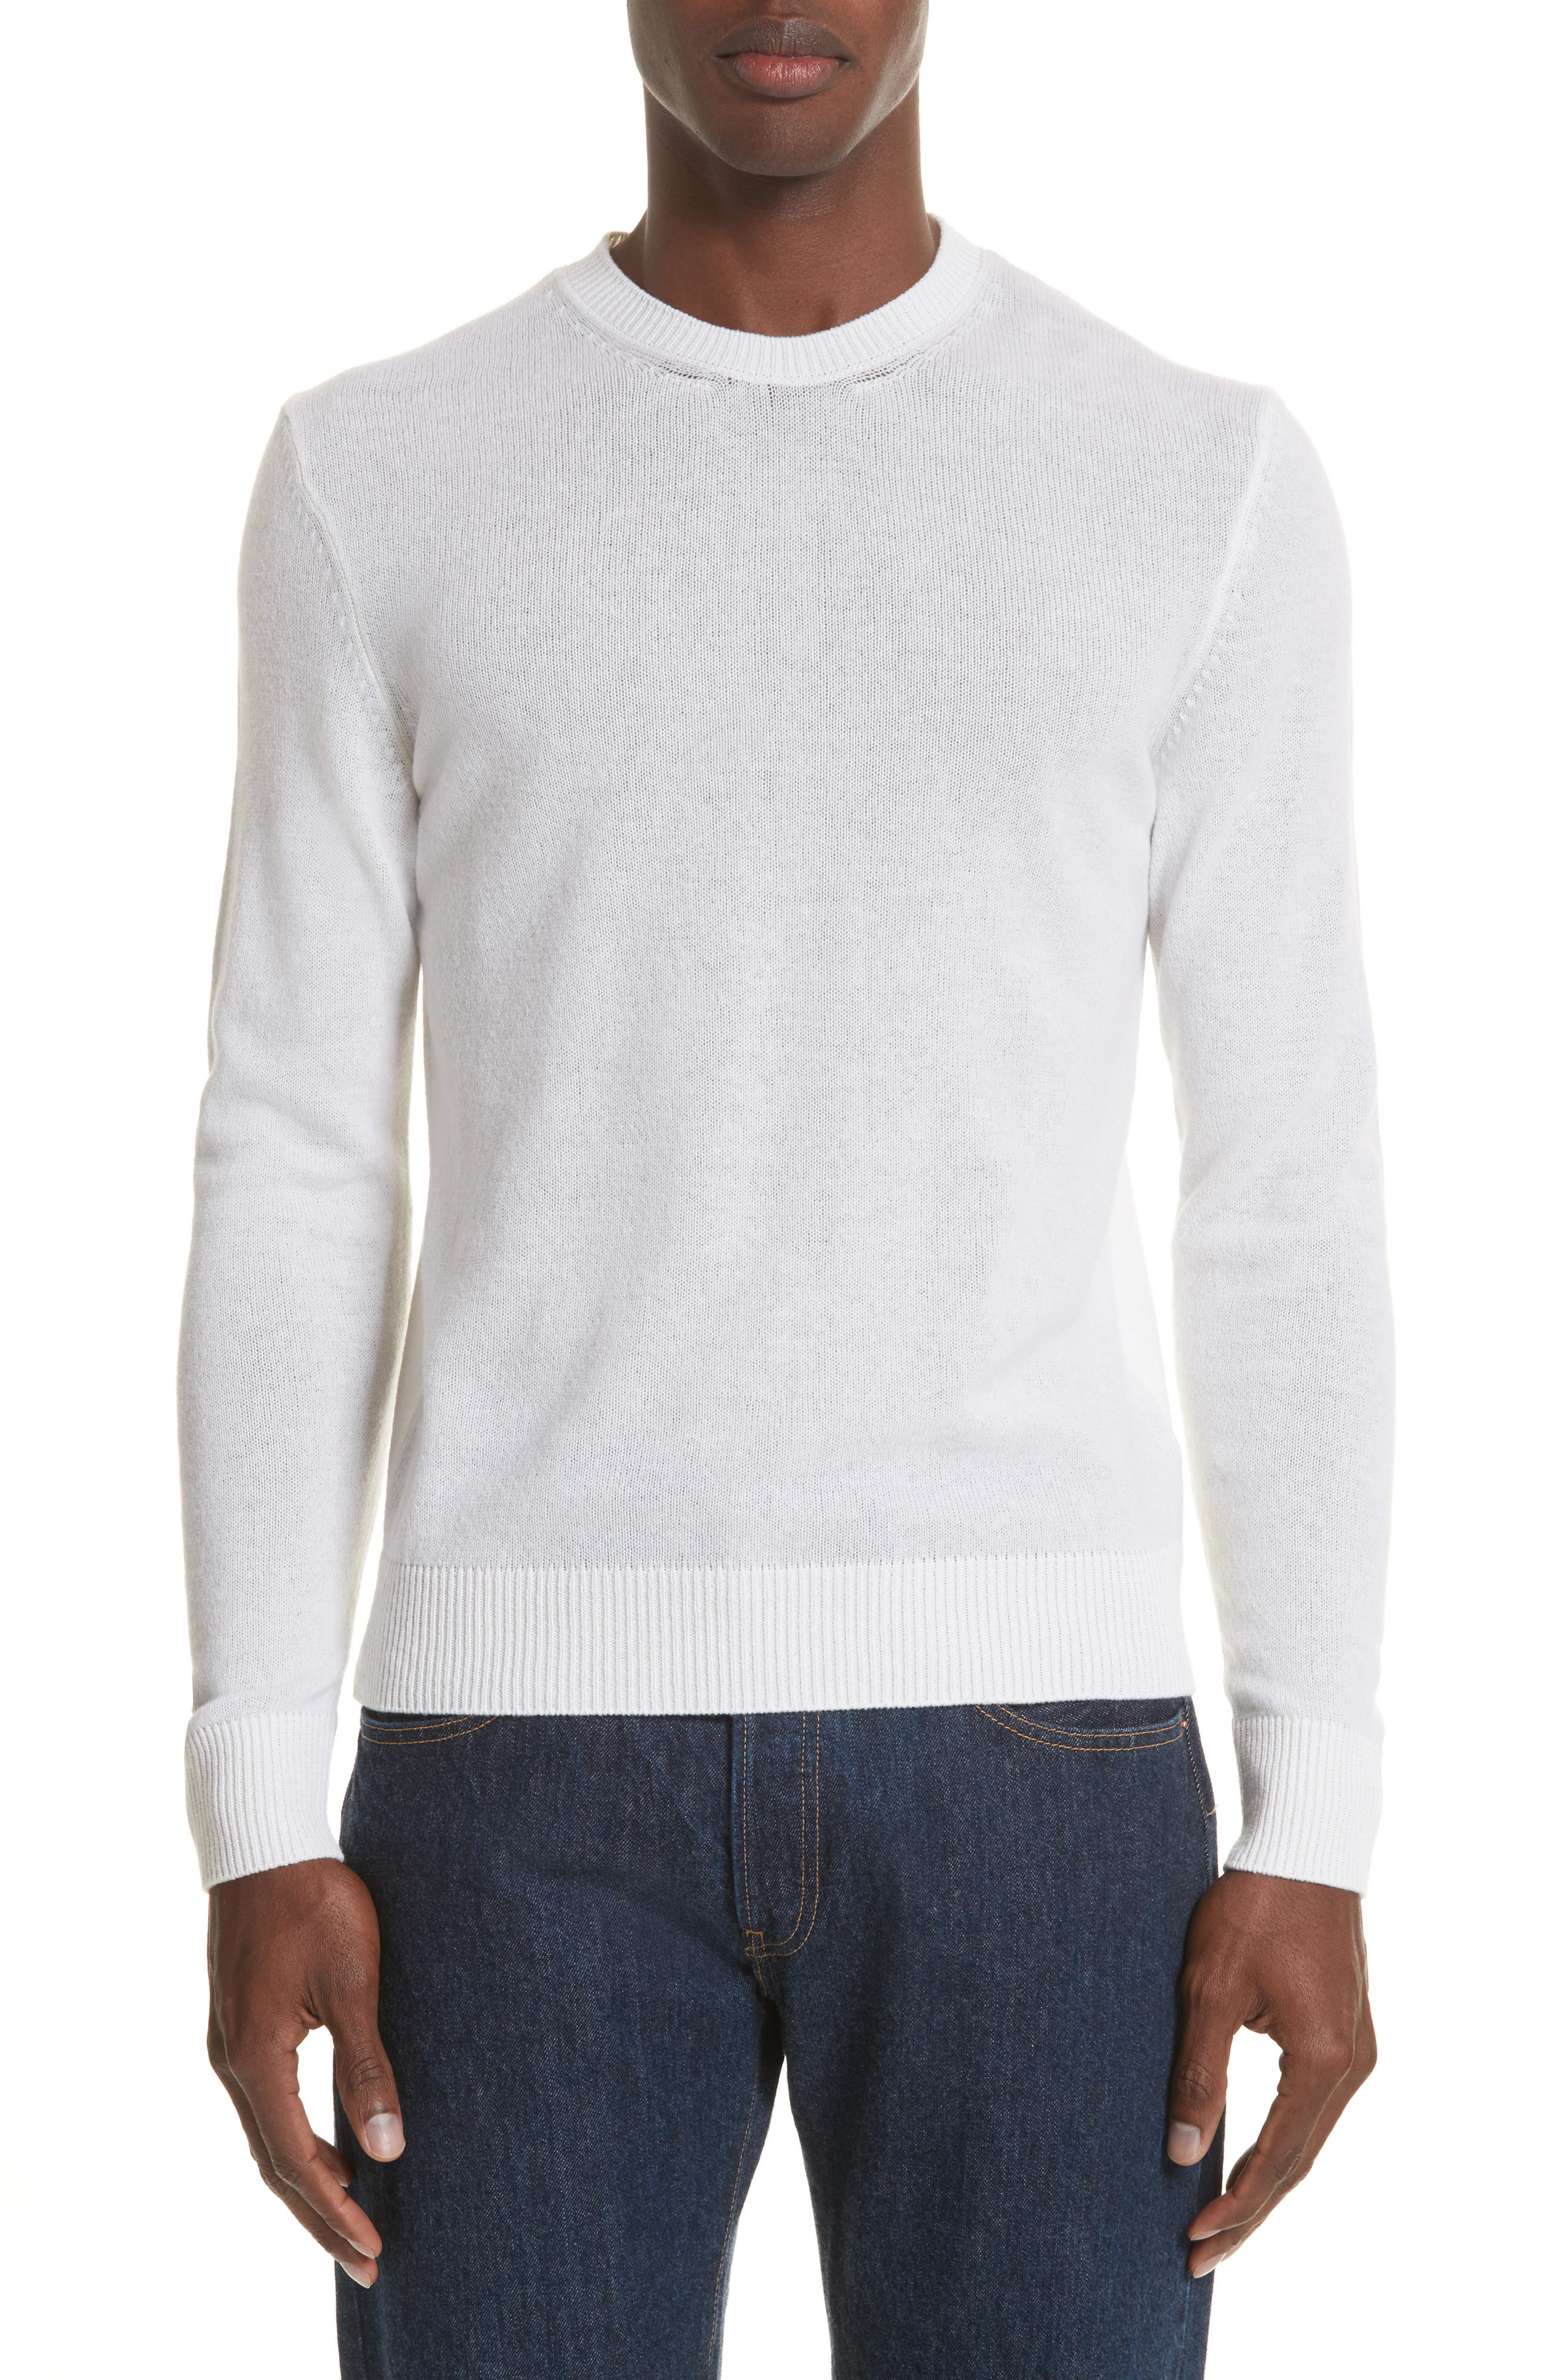 Cashmere Crewneck Sweater,                             Main thumbnail 1, color,                             100